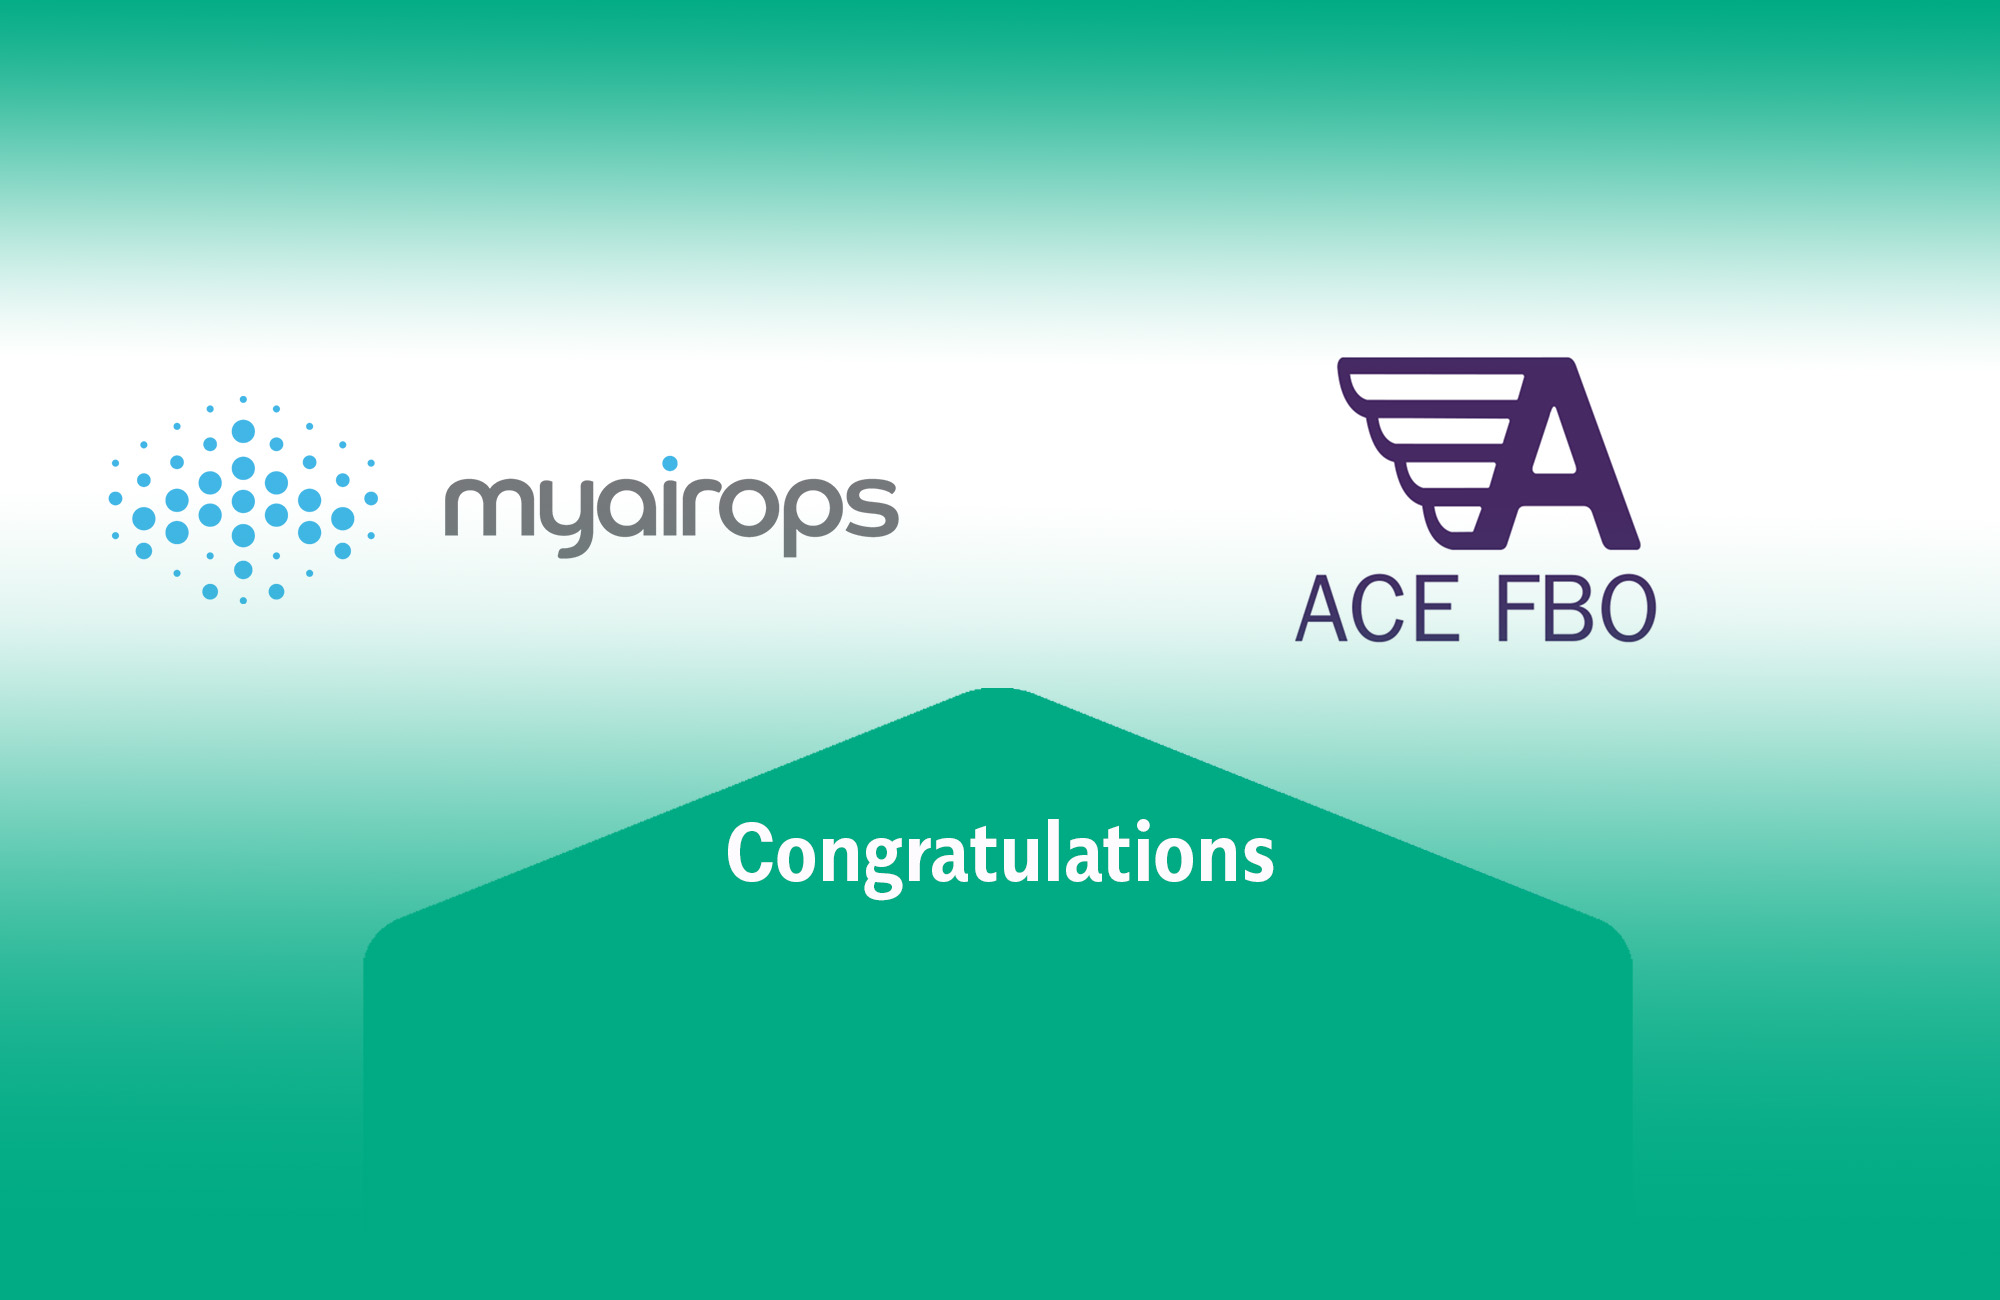 Ace Fa ace fbo selects myairops as new fbo software suppliers